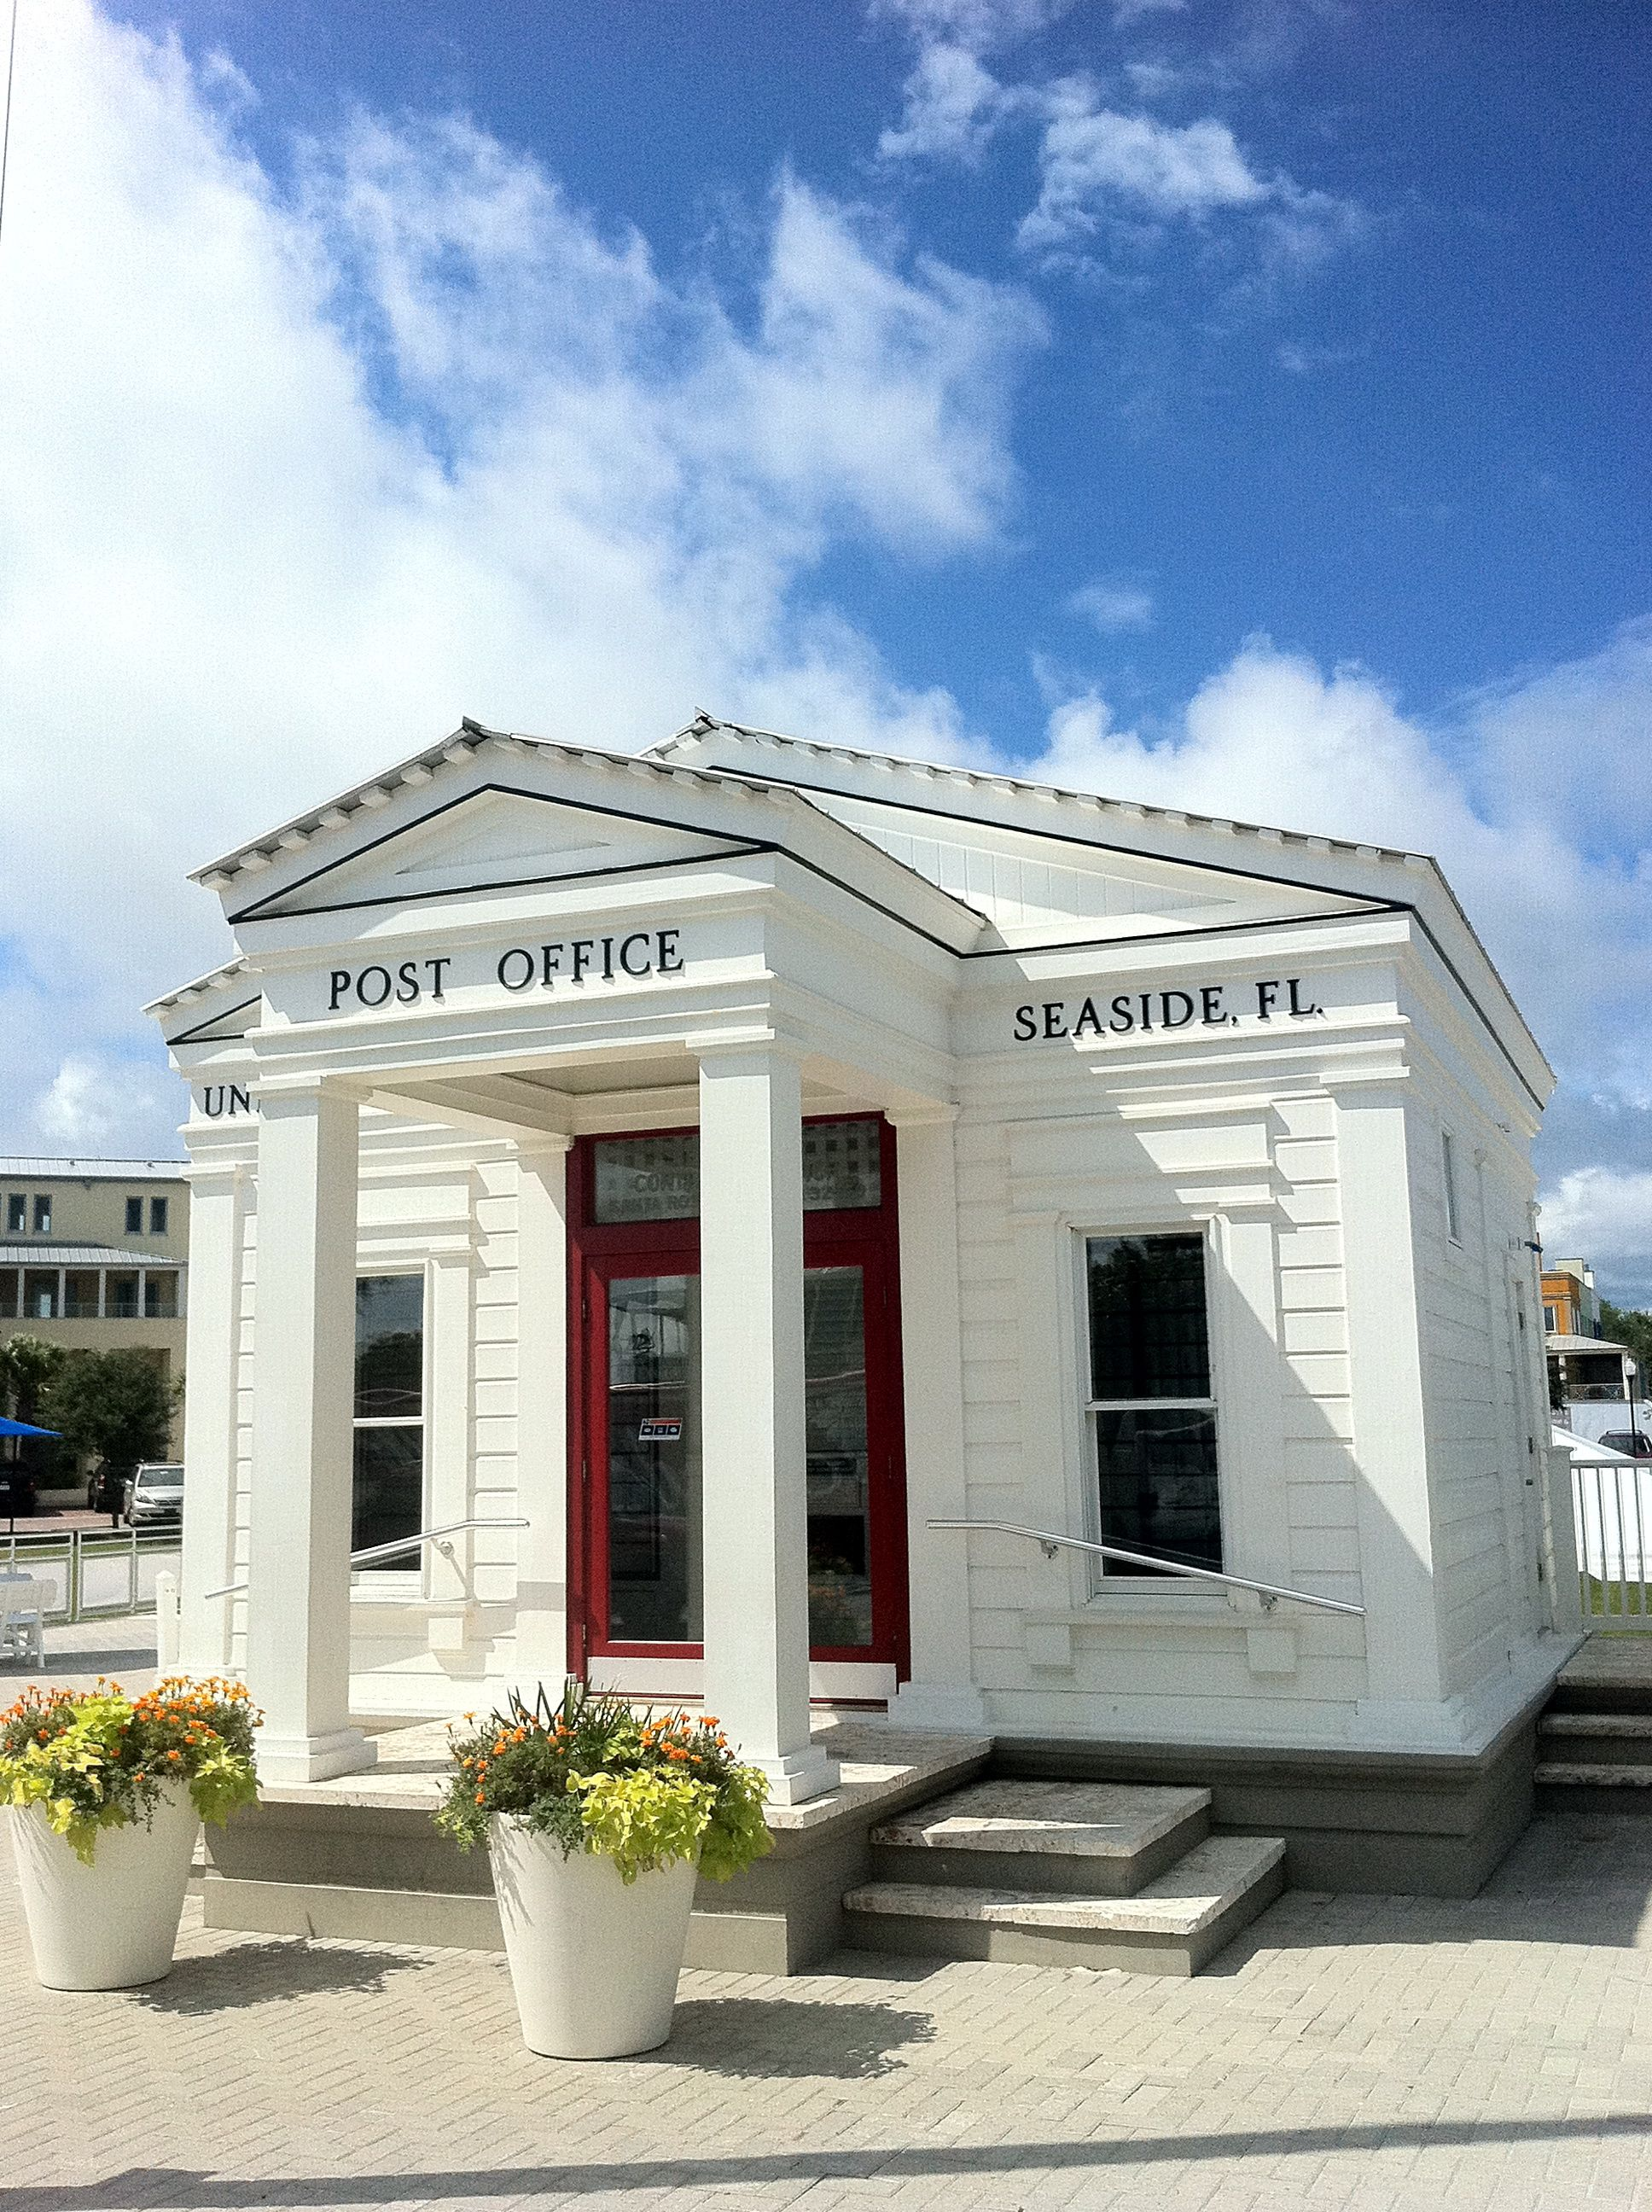 Post Office Seaside Florida http://www.beachreunion.com/vacation-rentals-homes.asp?cat=5796